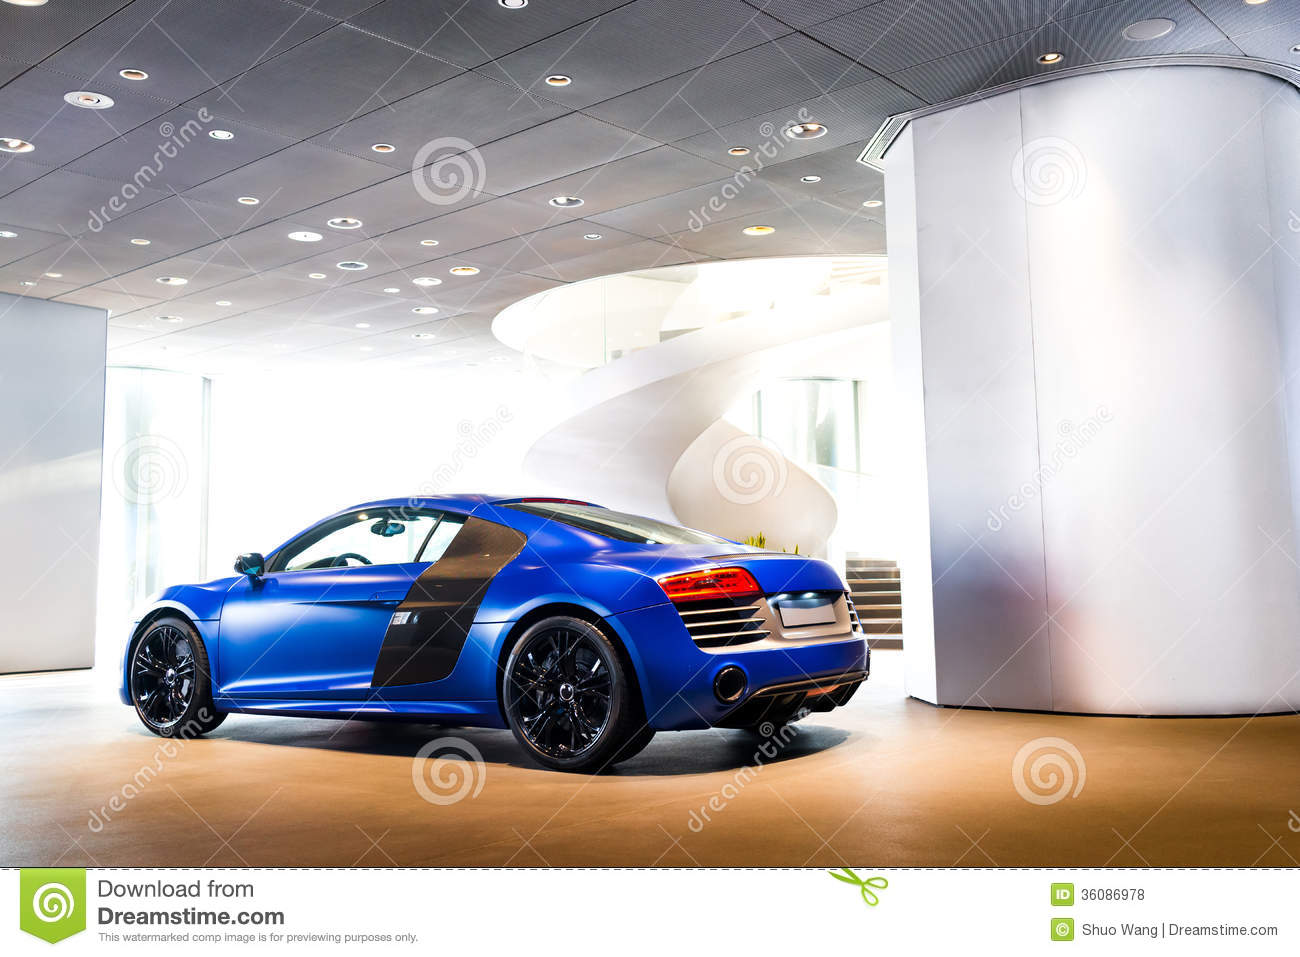 Expensive Car For Sale Or Gift Royalty Free Stock Image: Sports Car For Sale Royalty Free Stock Photos